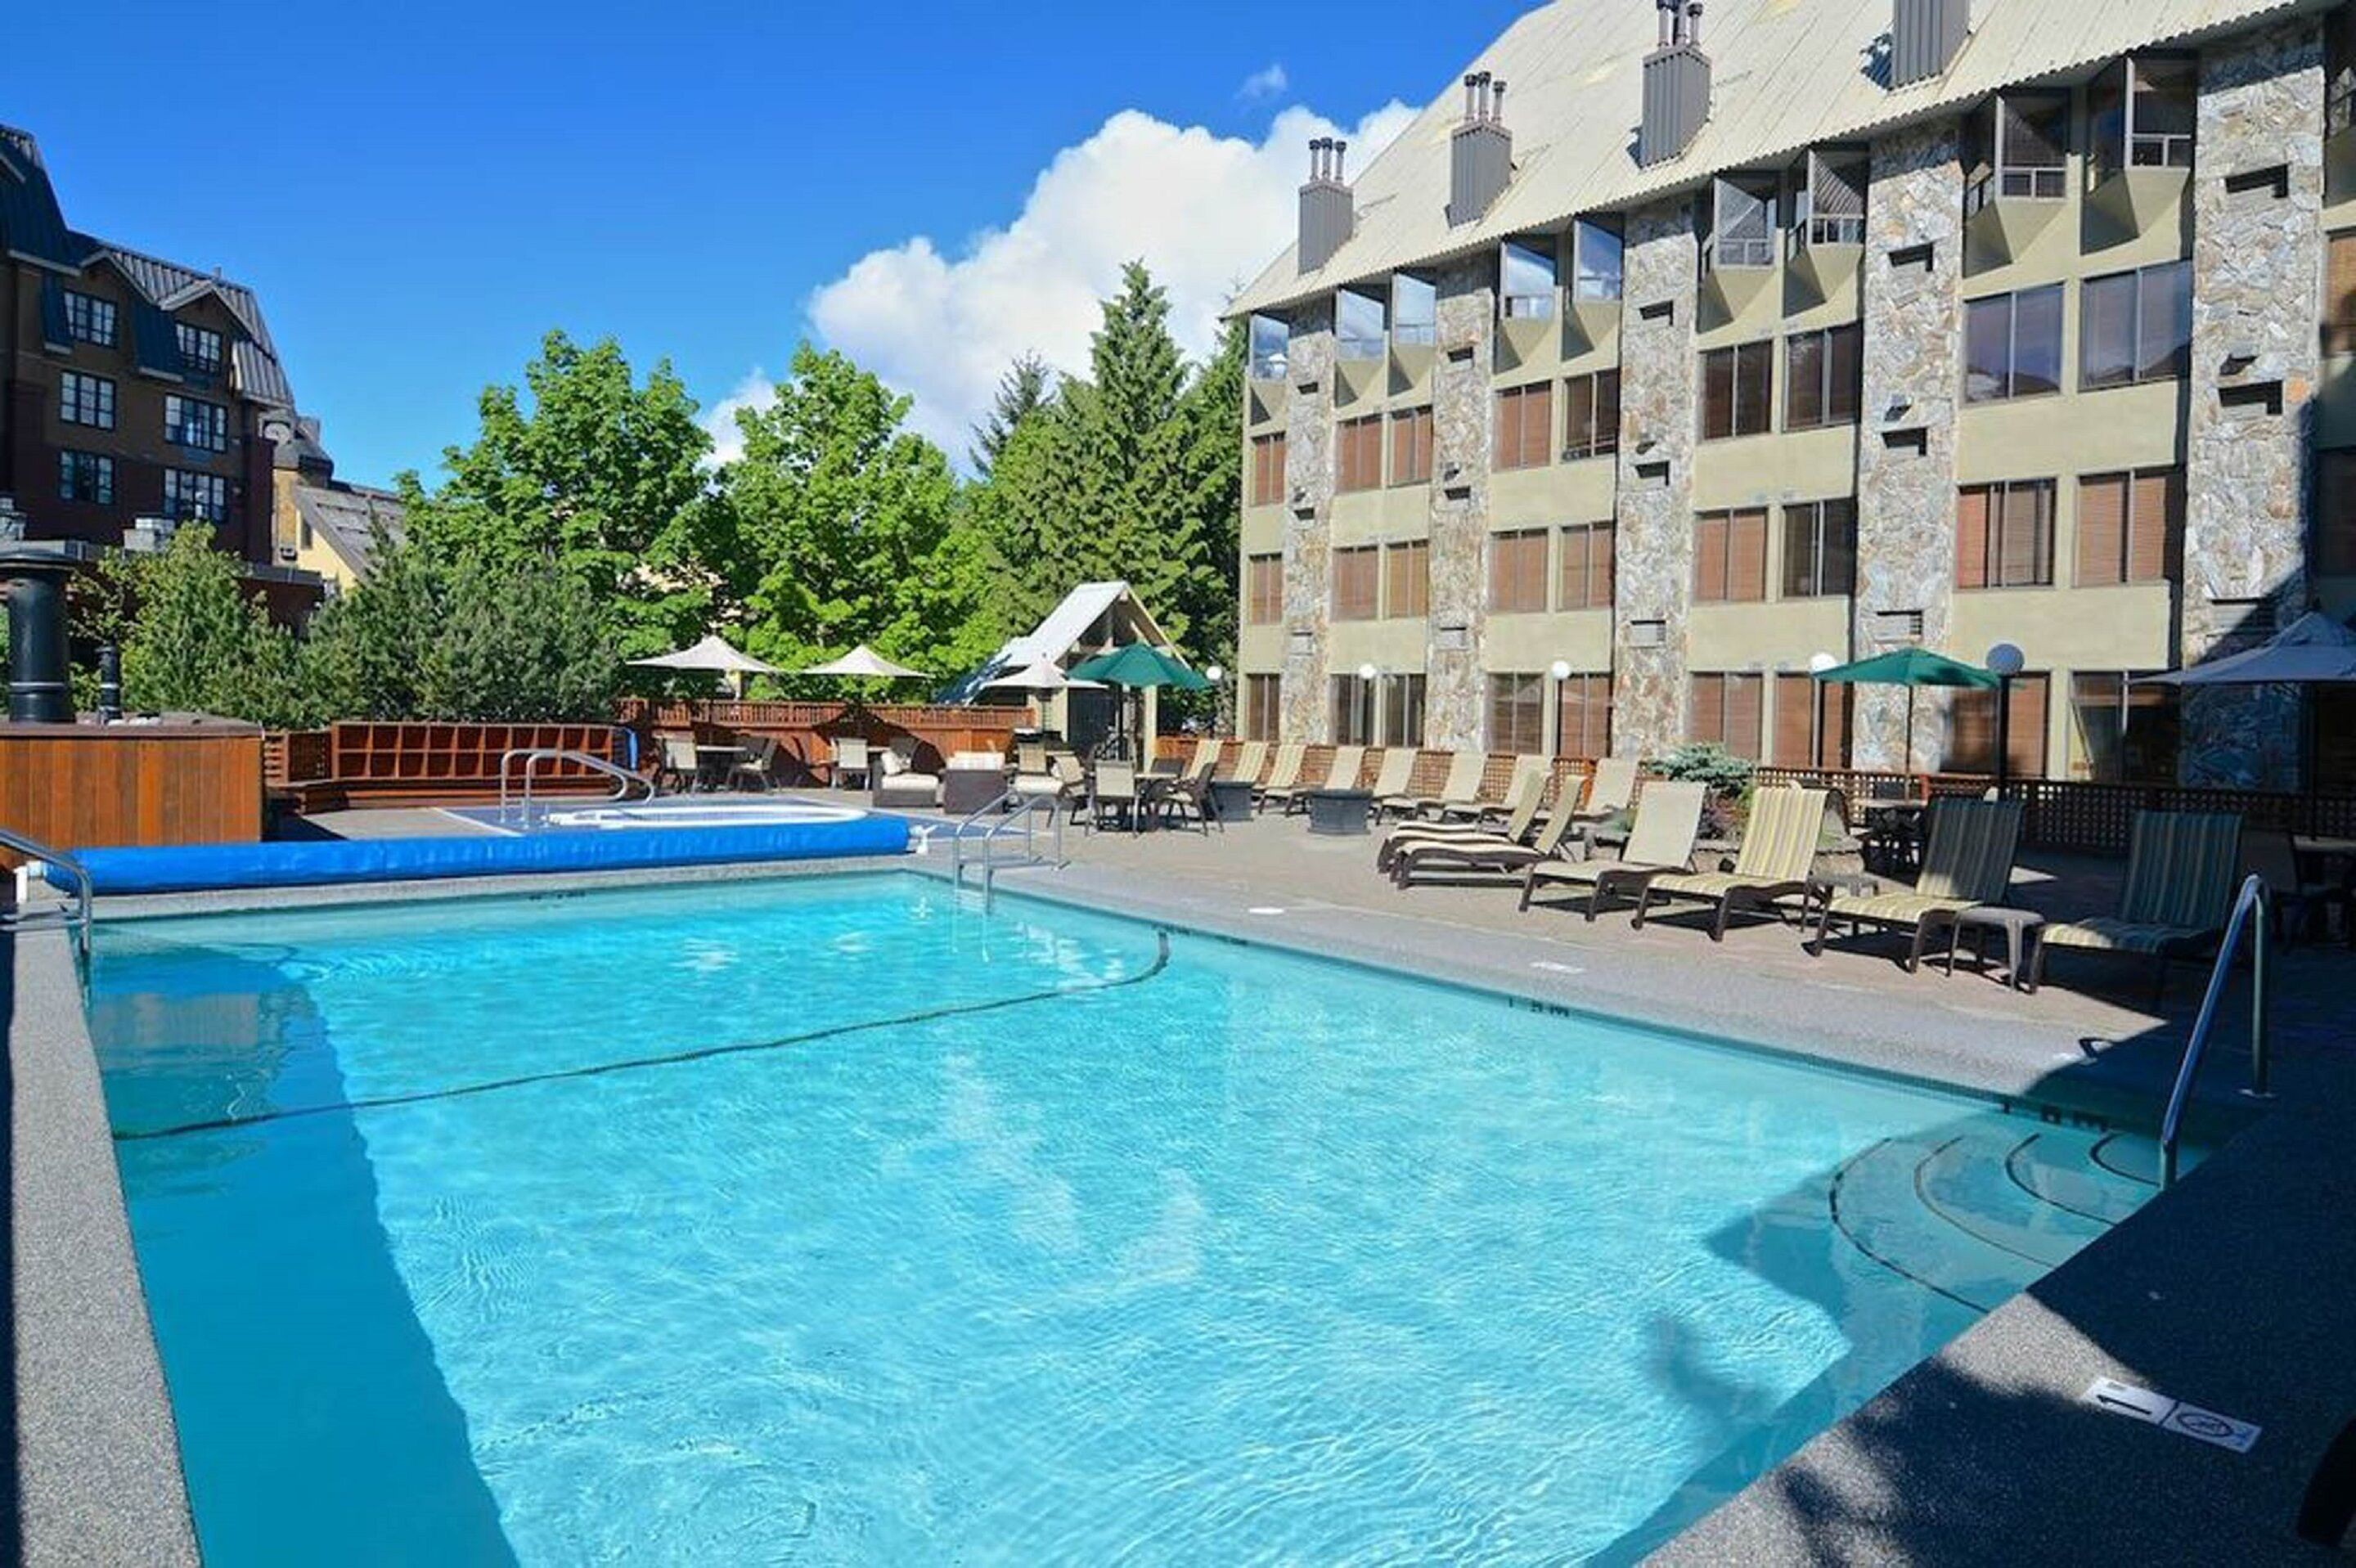 Courtesy of Whistler Village and Mountain Side Hotel Whistler by Executive / Expedia